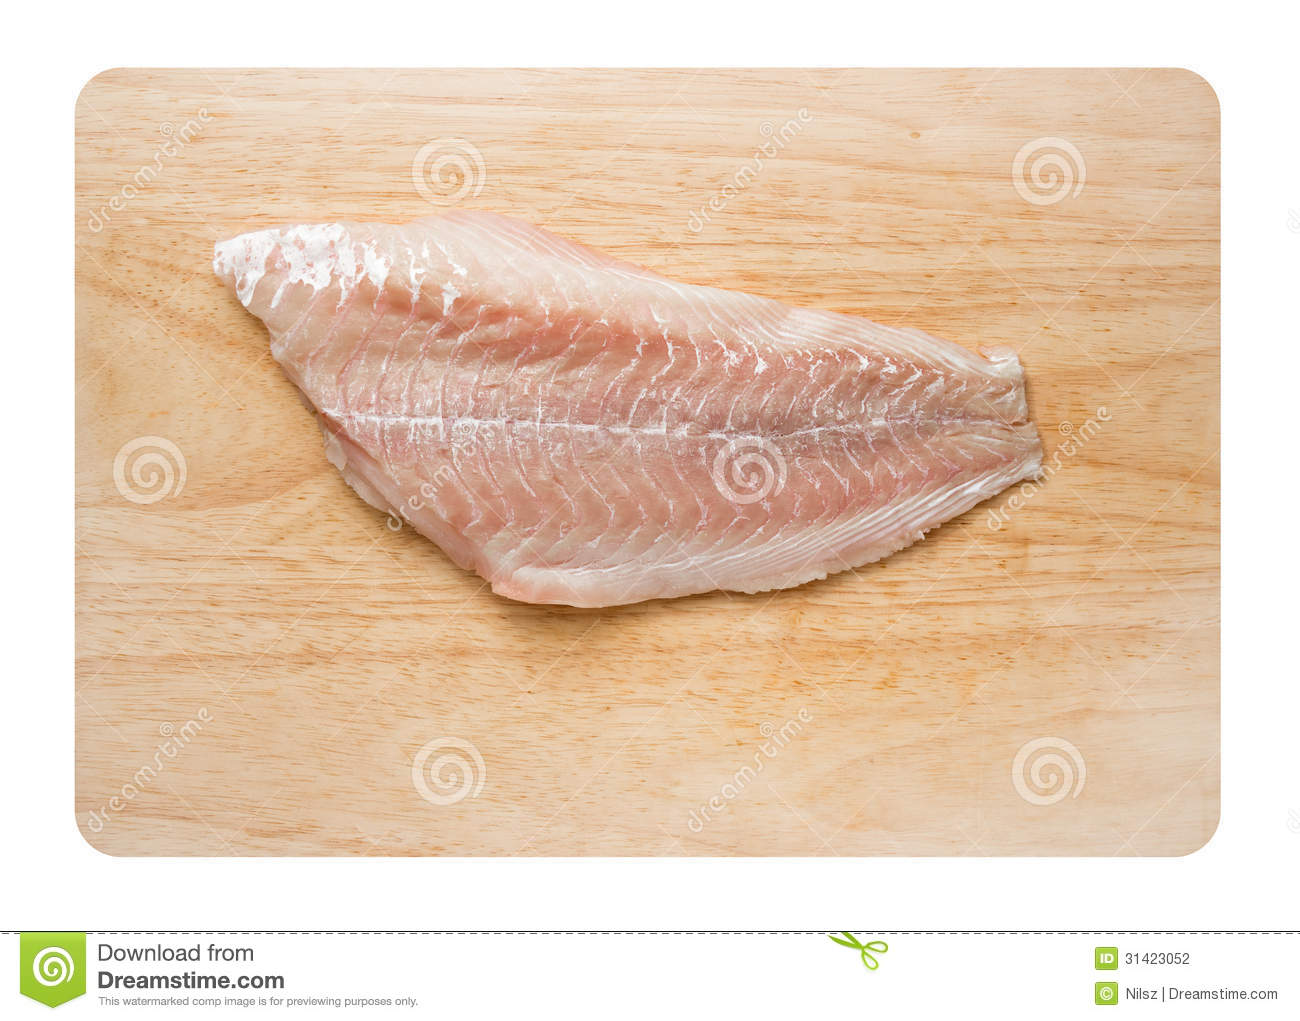 how to choose fresh fish fillet